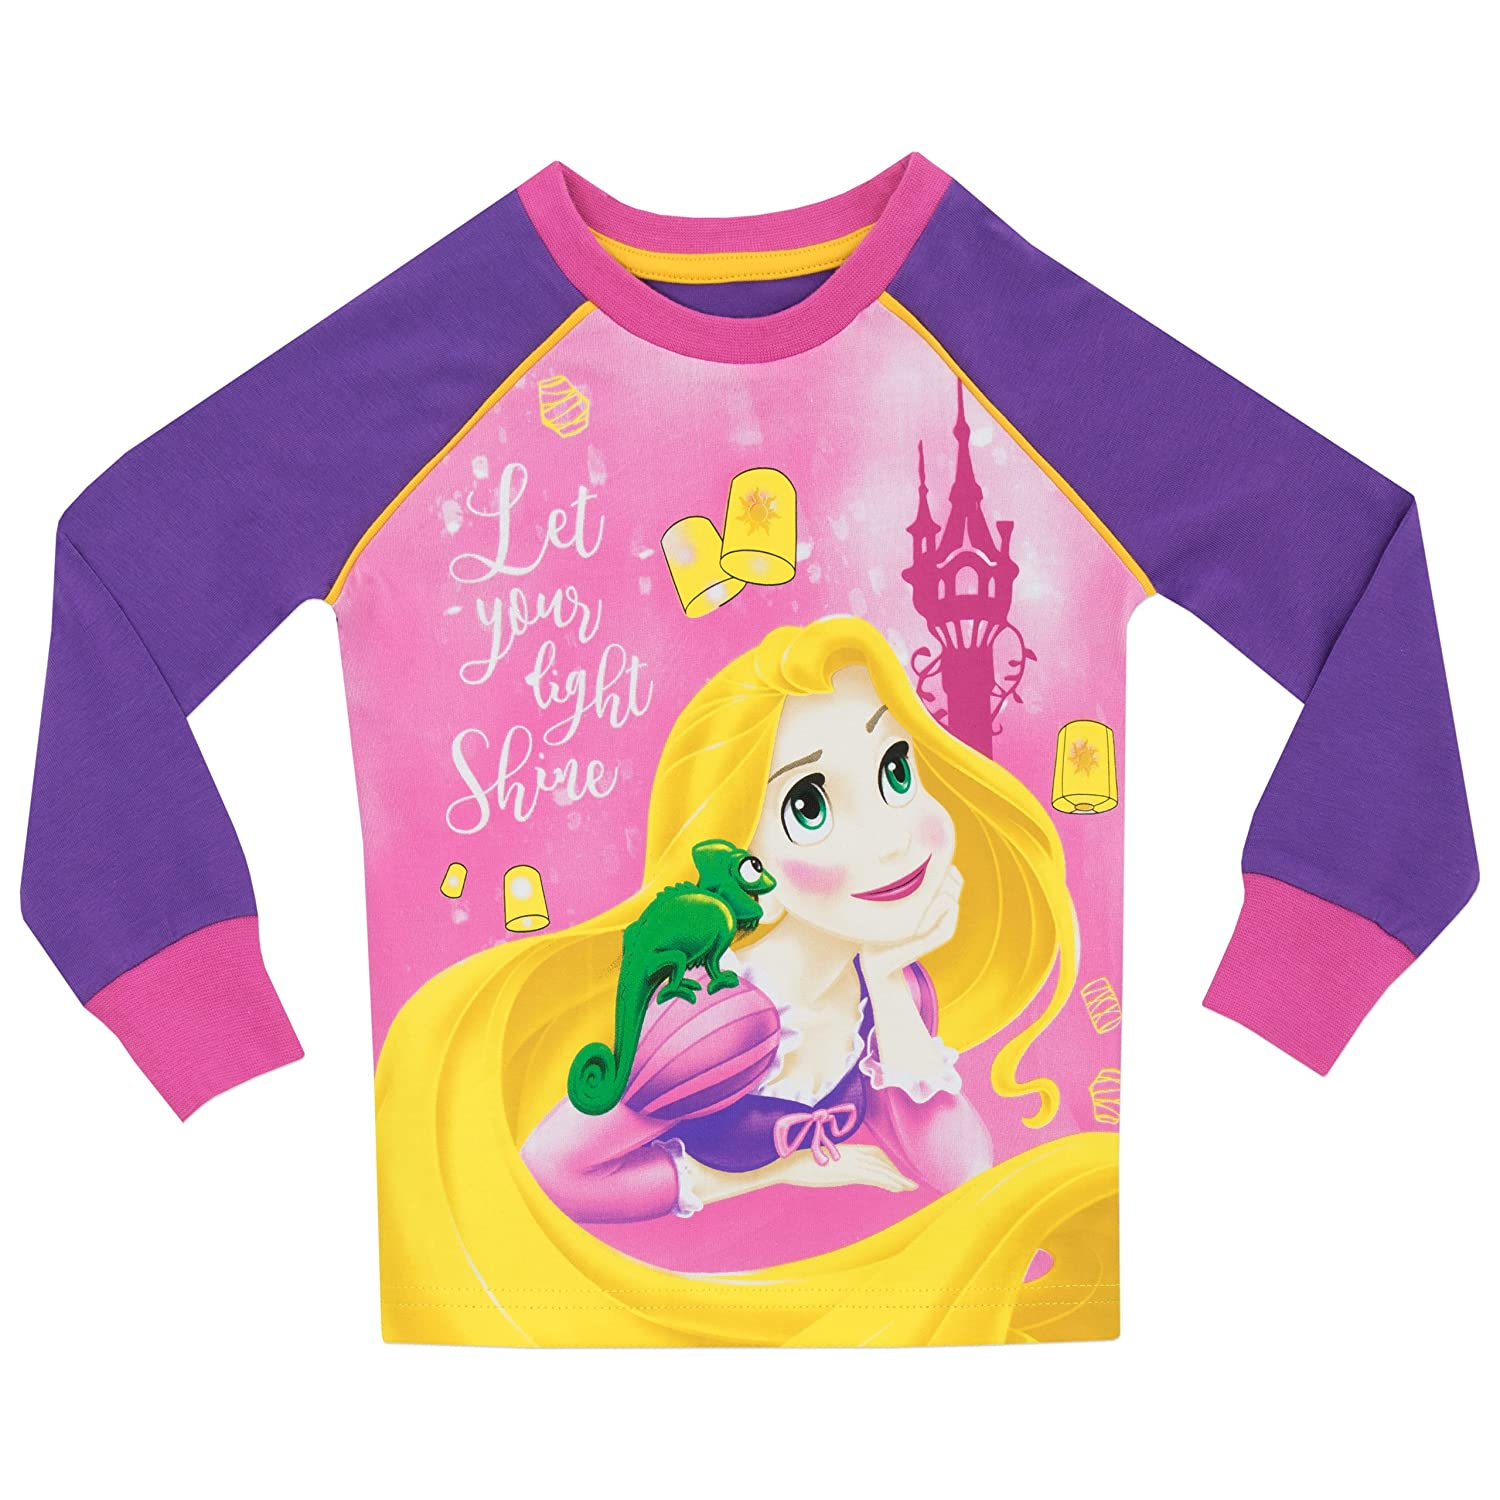 977c97e97 Disney Princess Girls Tangled Rapunzel Pyjamas - Snuggle Fit - Age 2 ...